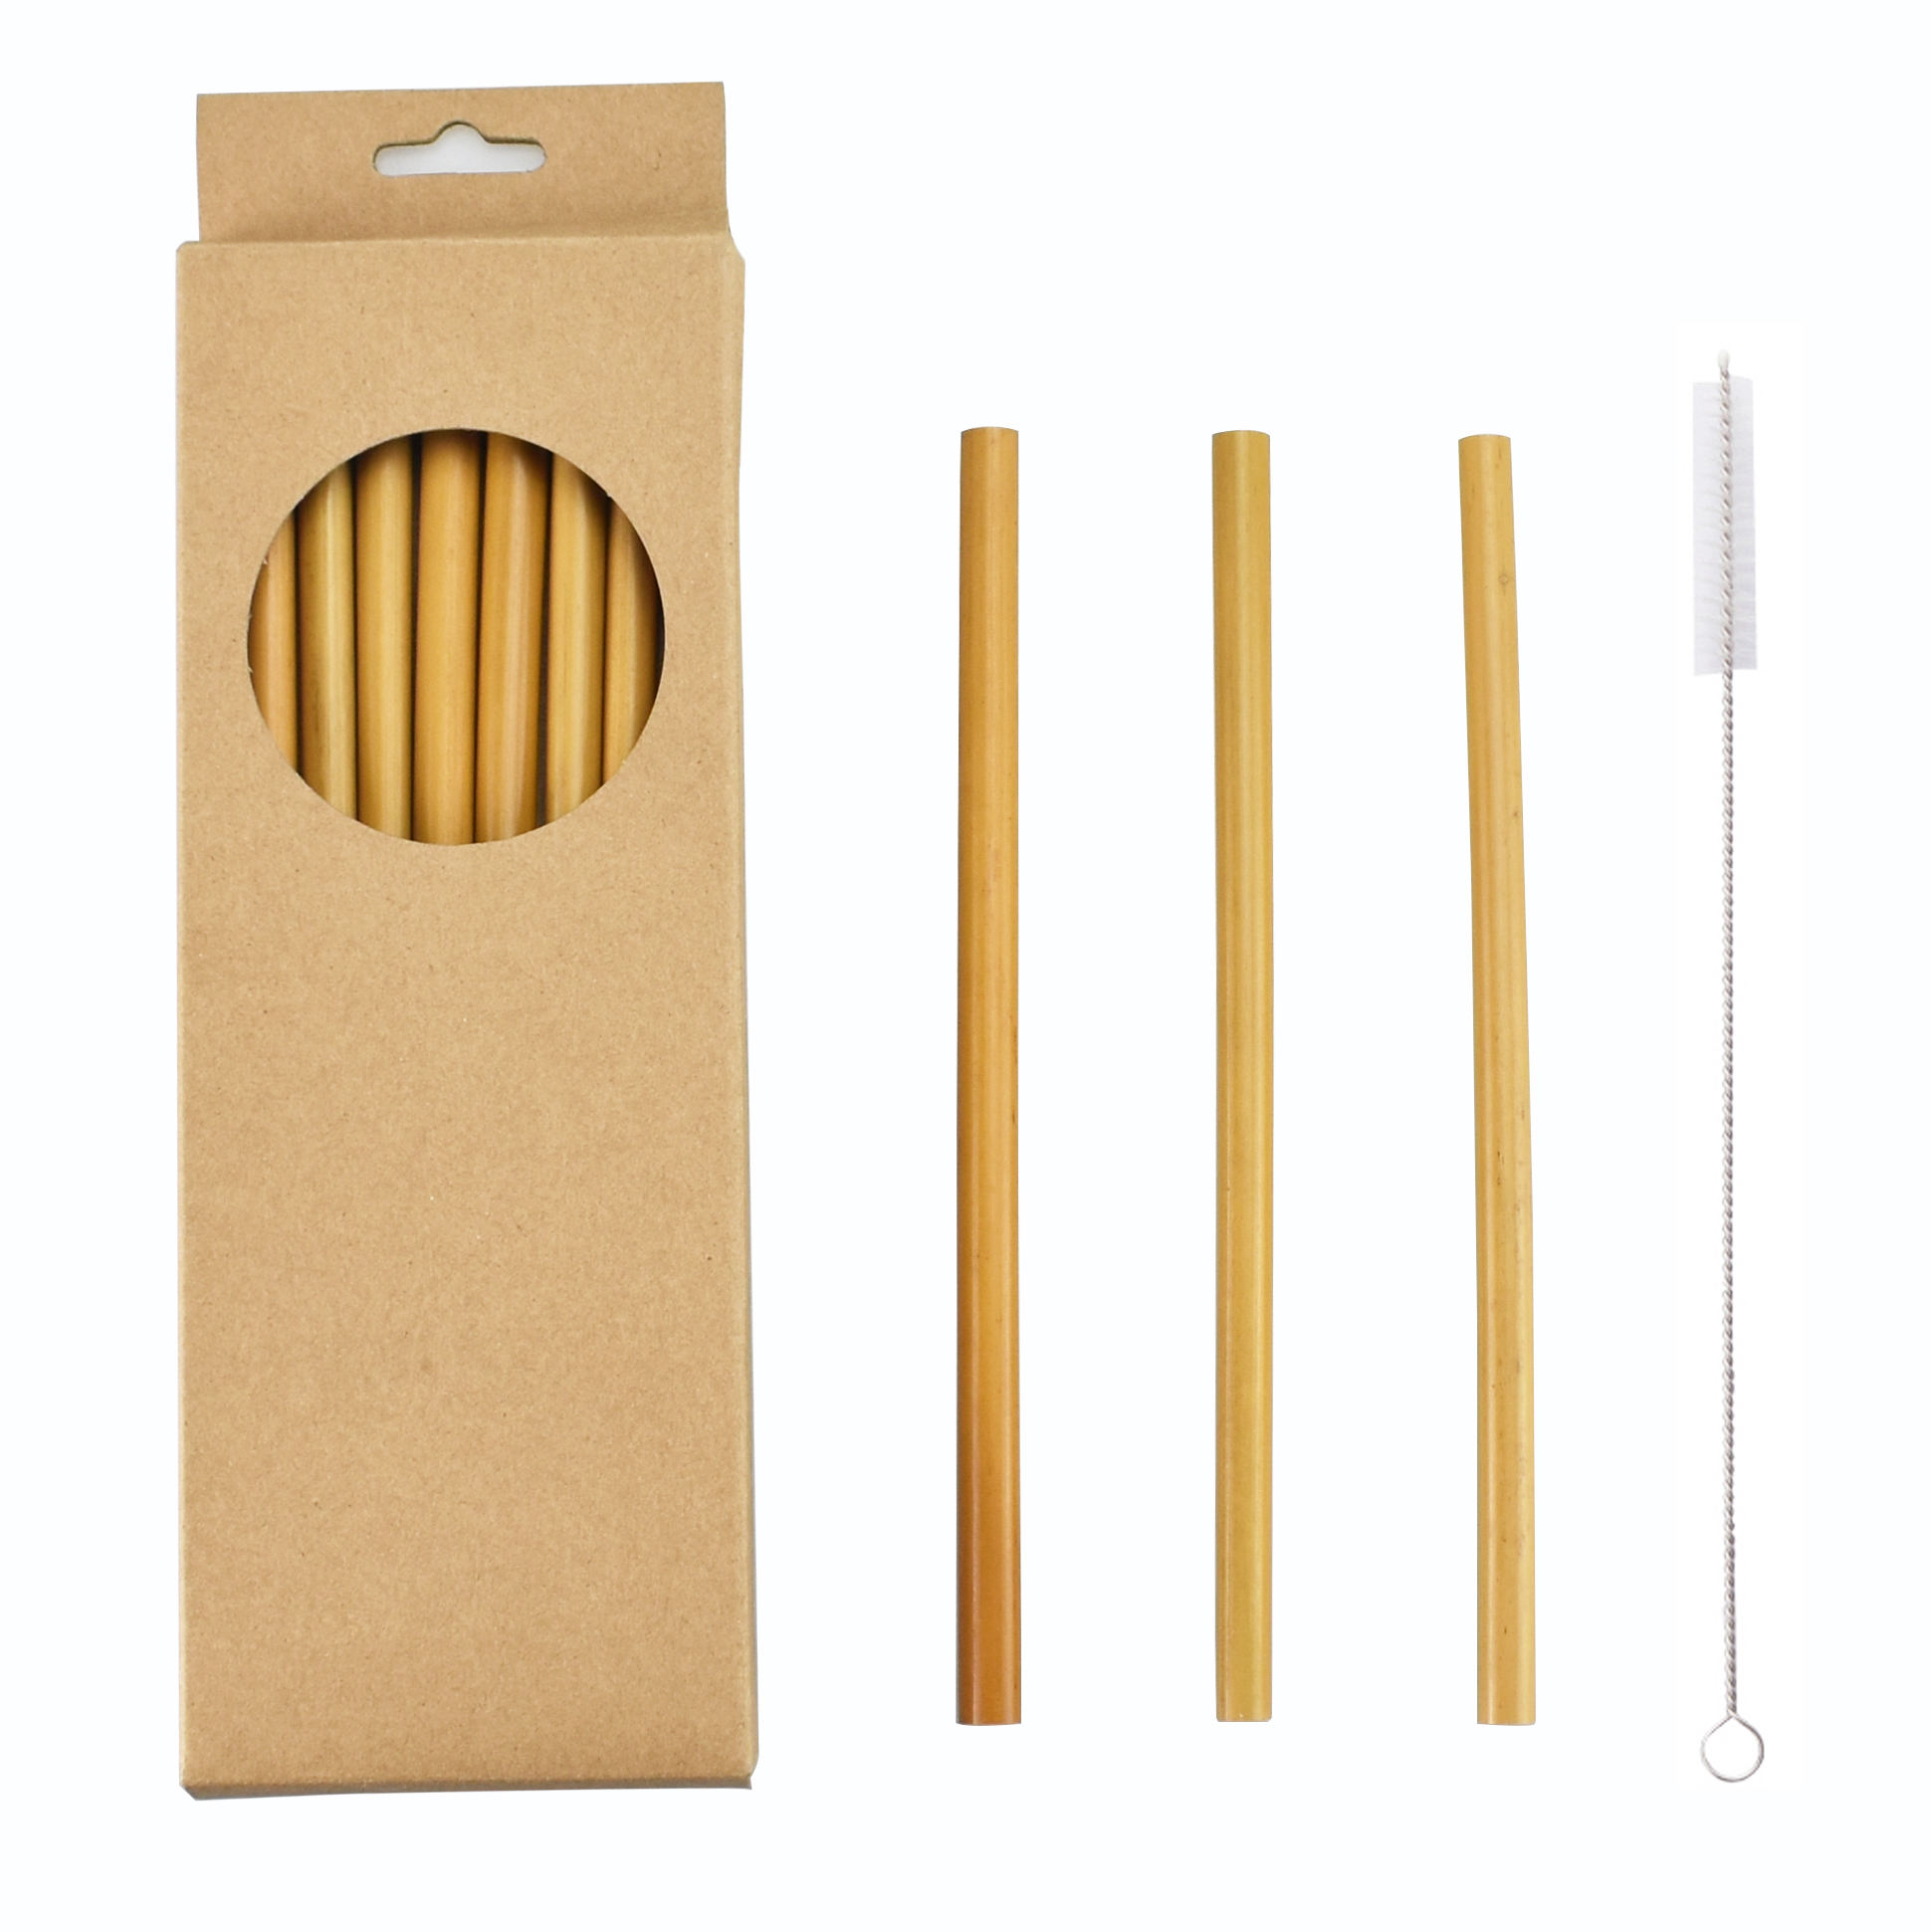 Amazon hot sale custom logo packaging eco friendly biodegradable 100% natural reusable drinking bamboo straw set with brush